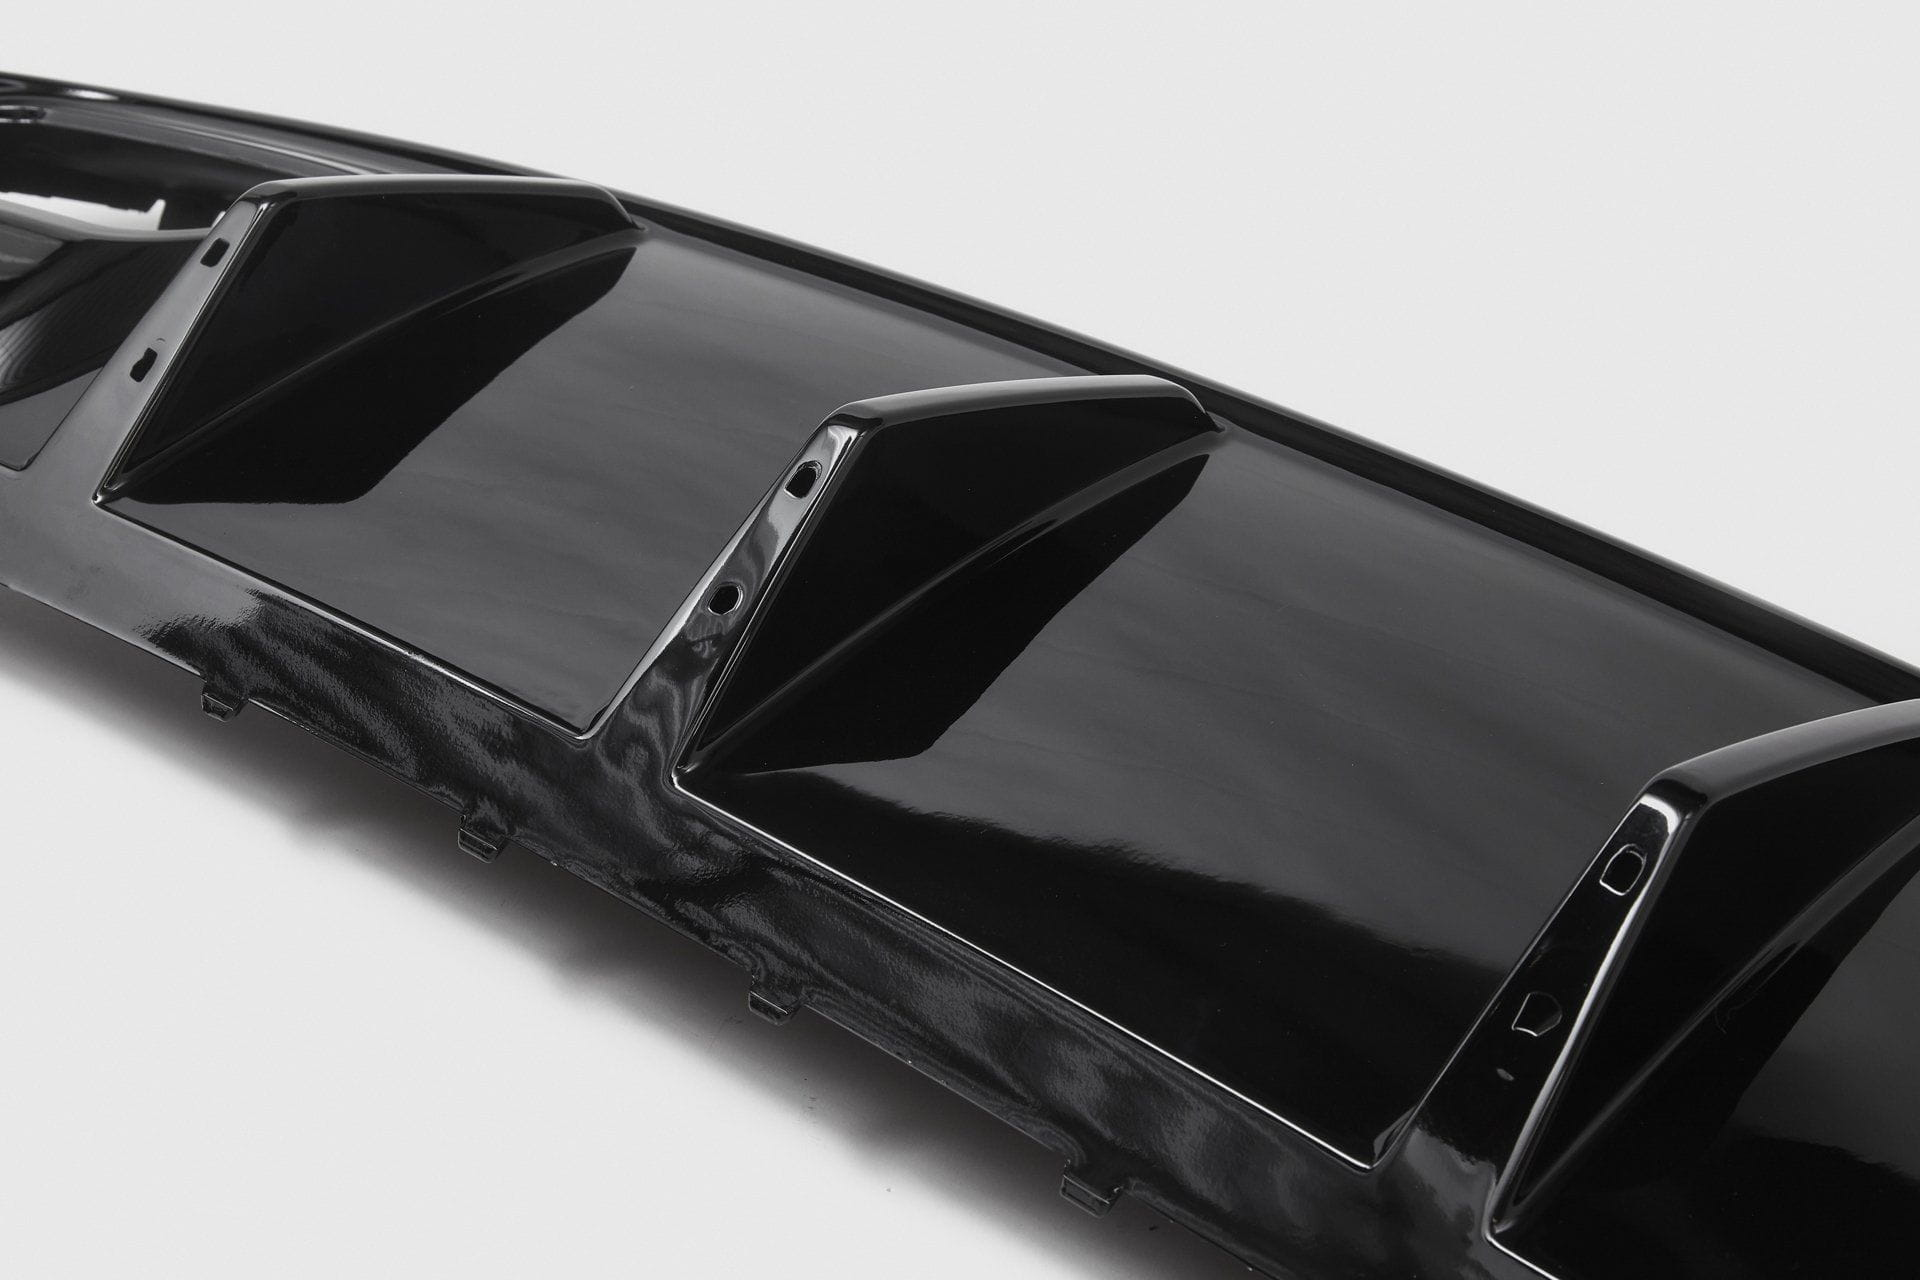 Mercedes-Benz A-Class A45 AMG Style Rear Diffuser (W176) Black Tailpipes